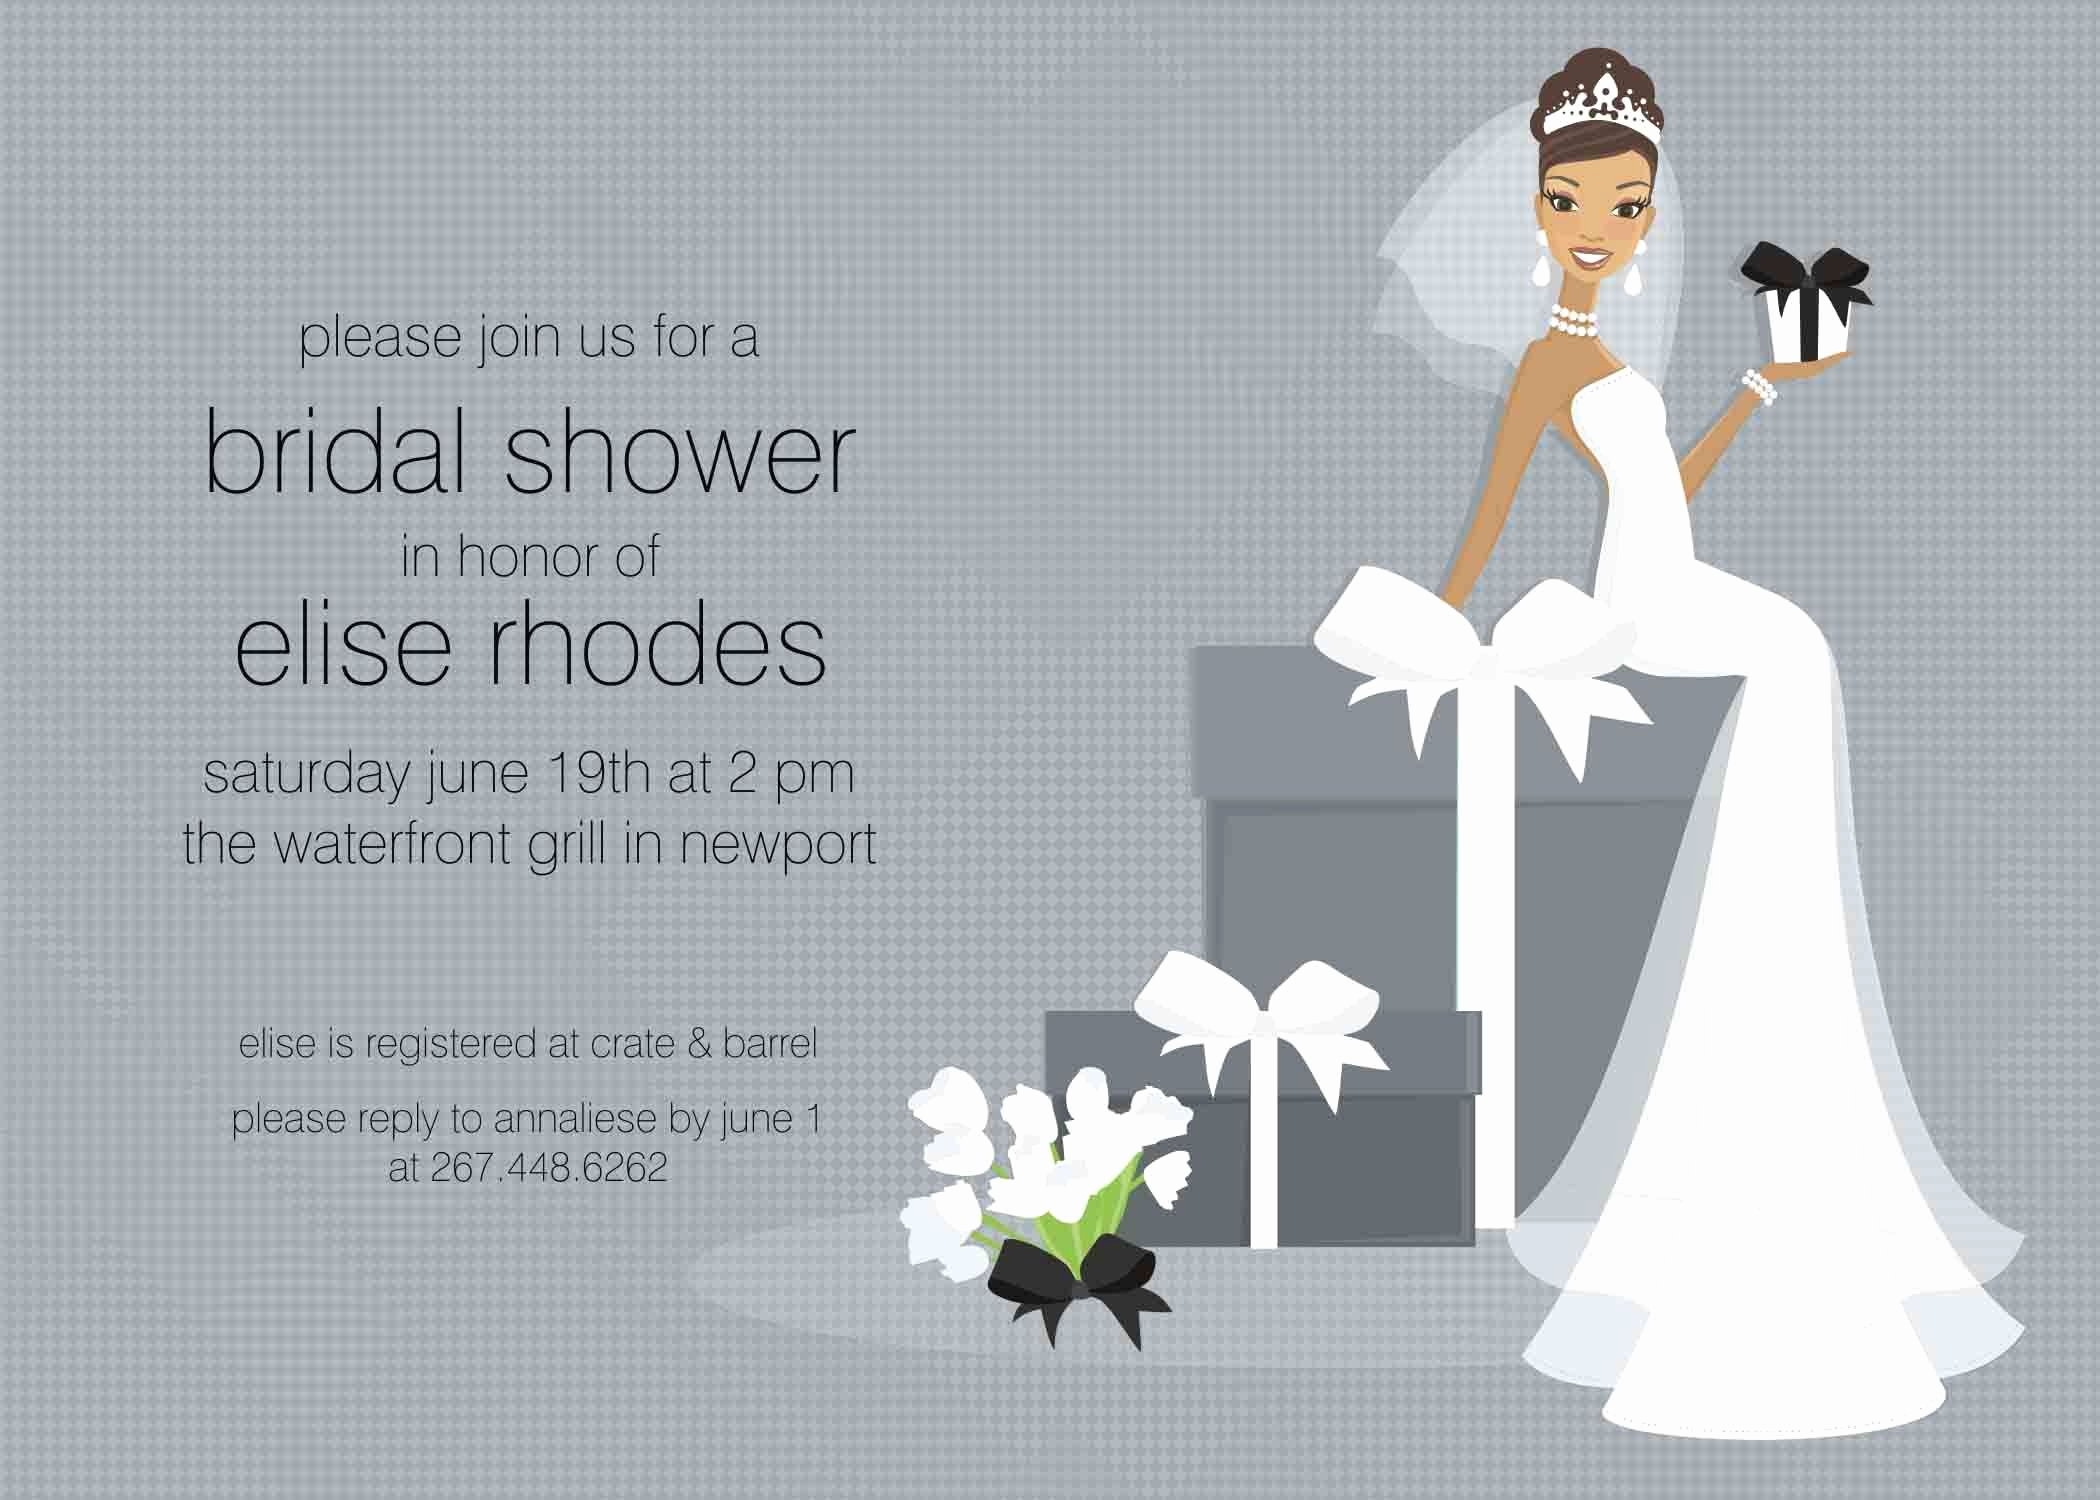 Bridal Shower Invitation Template Awesome Free Bridal Shower Invitation Templates